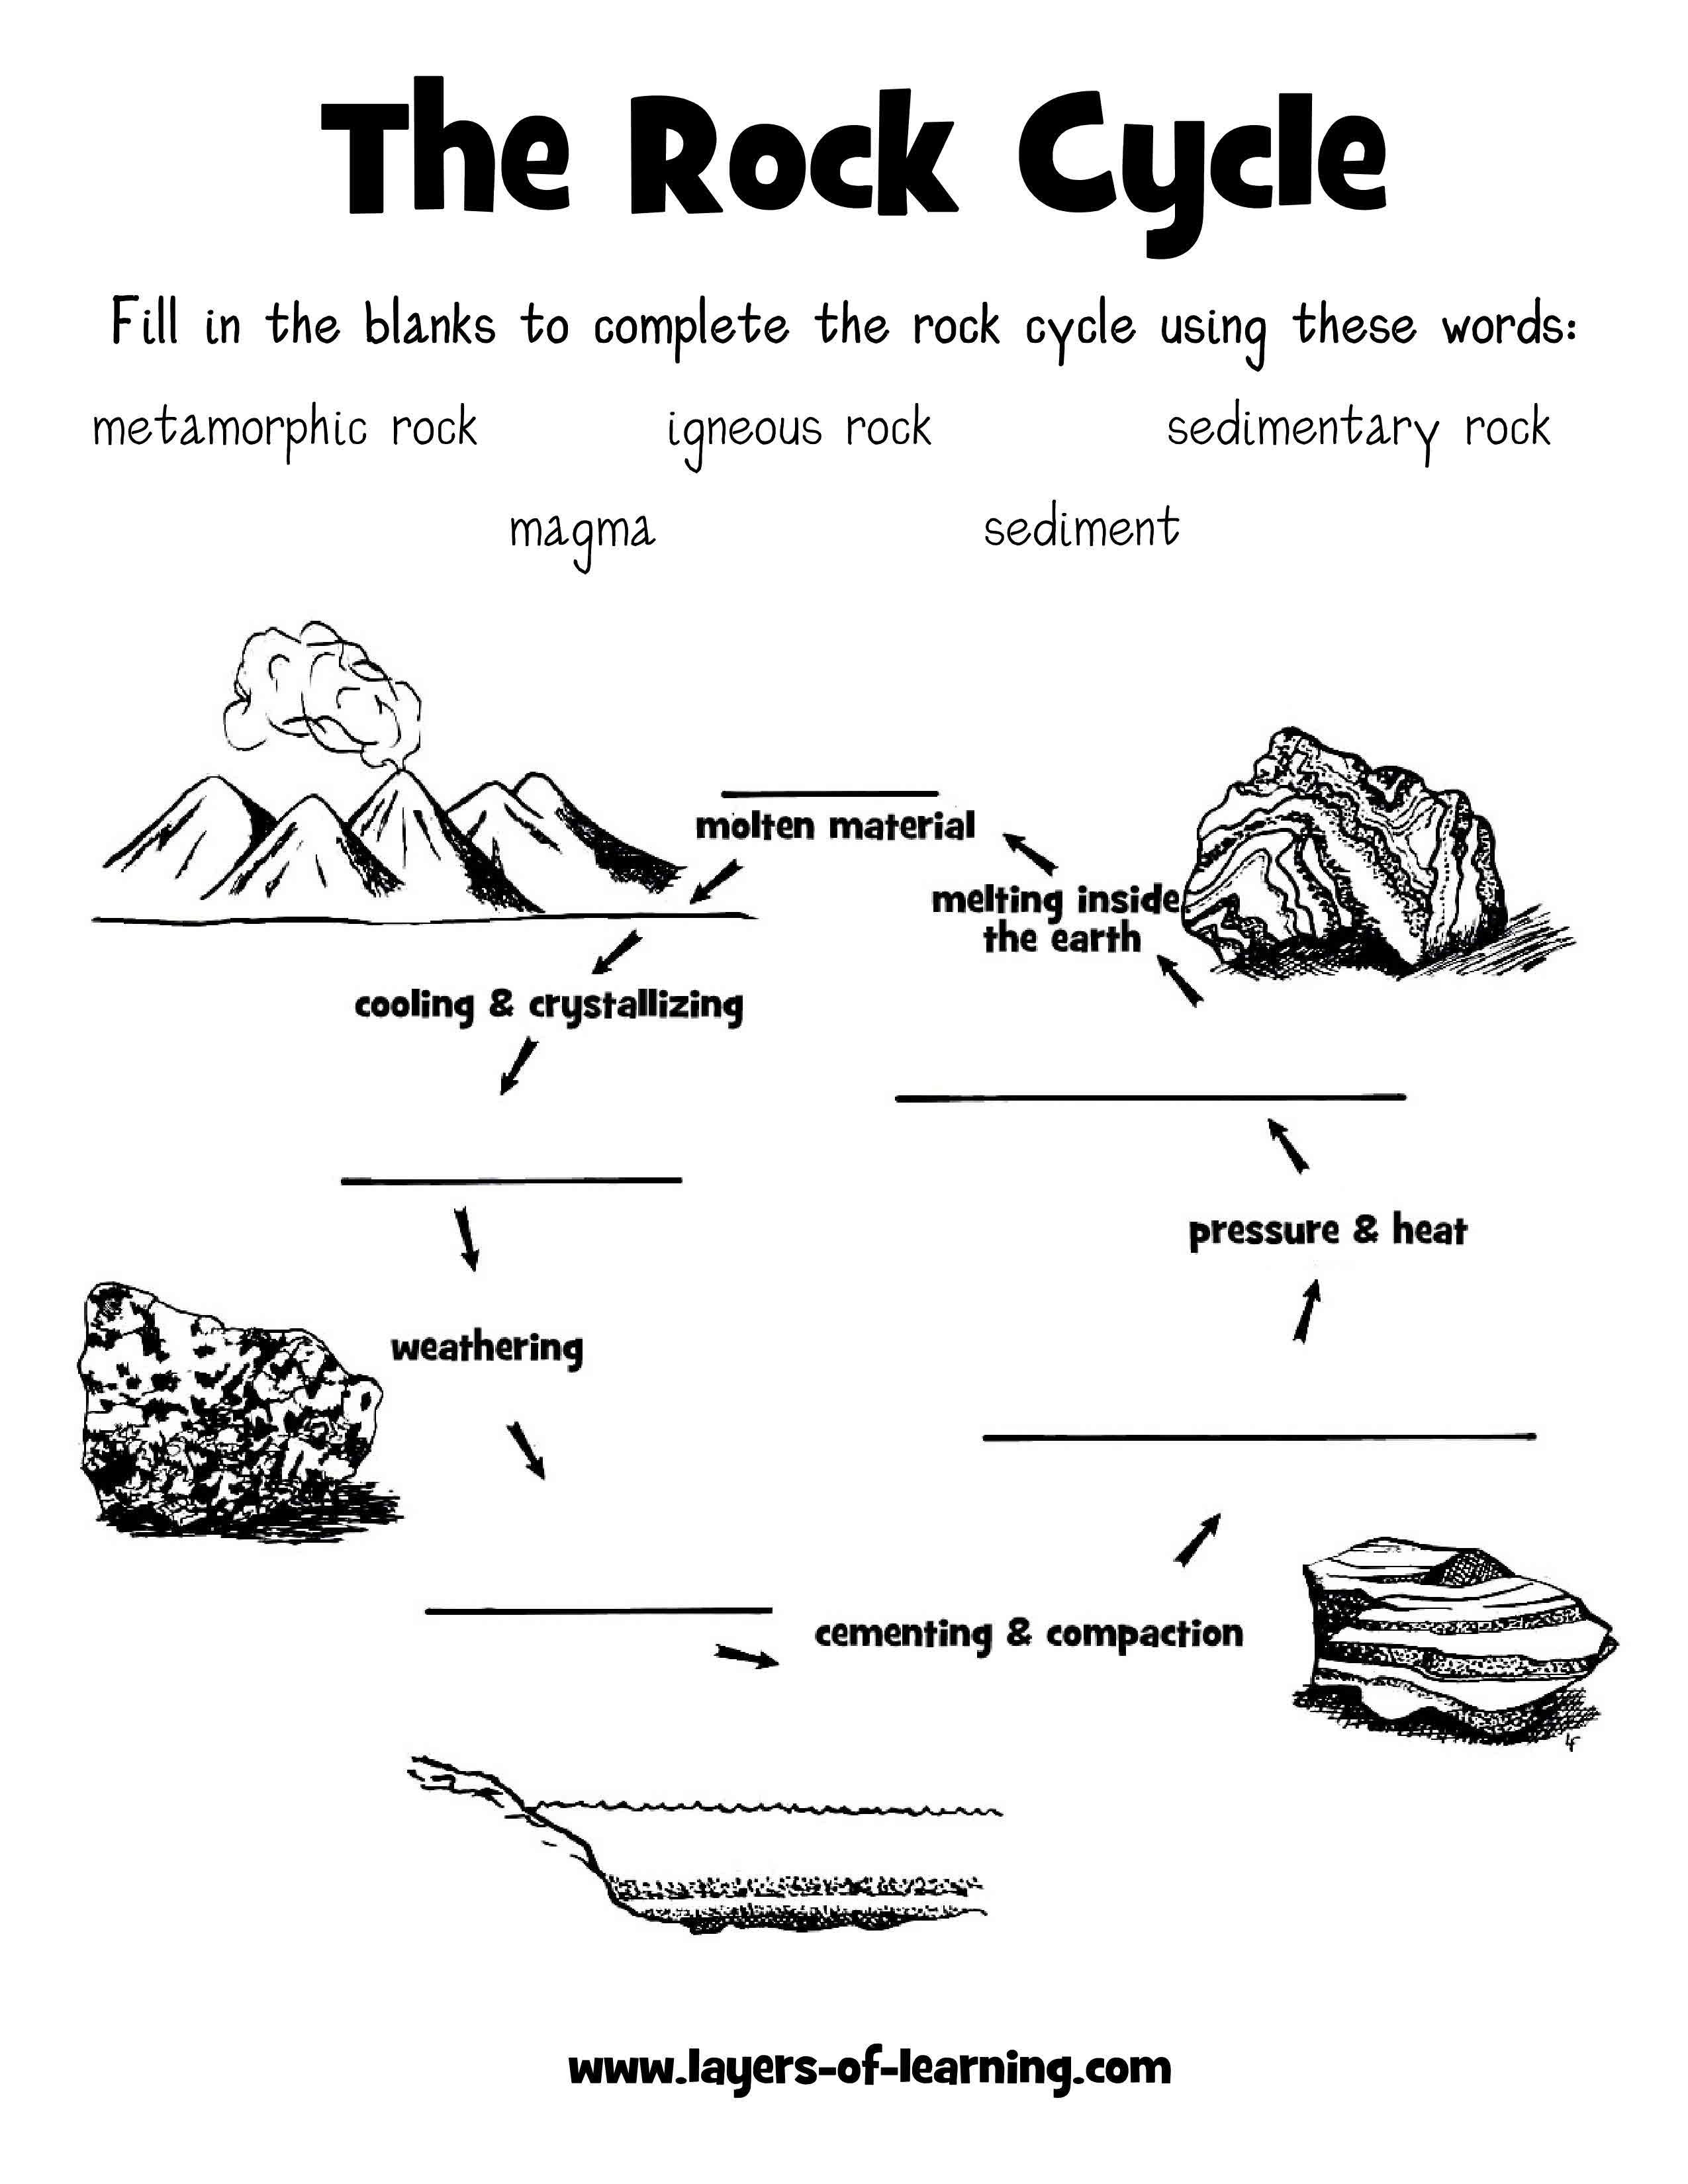 rock cycle worksheet layers of learning science. Black Bedroom Furniture Sets. Home Design Ideas